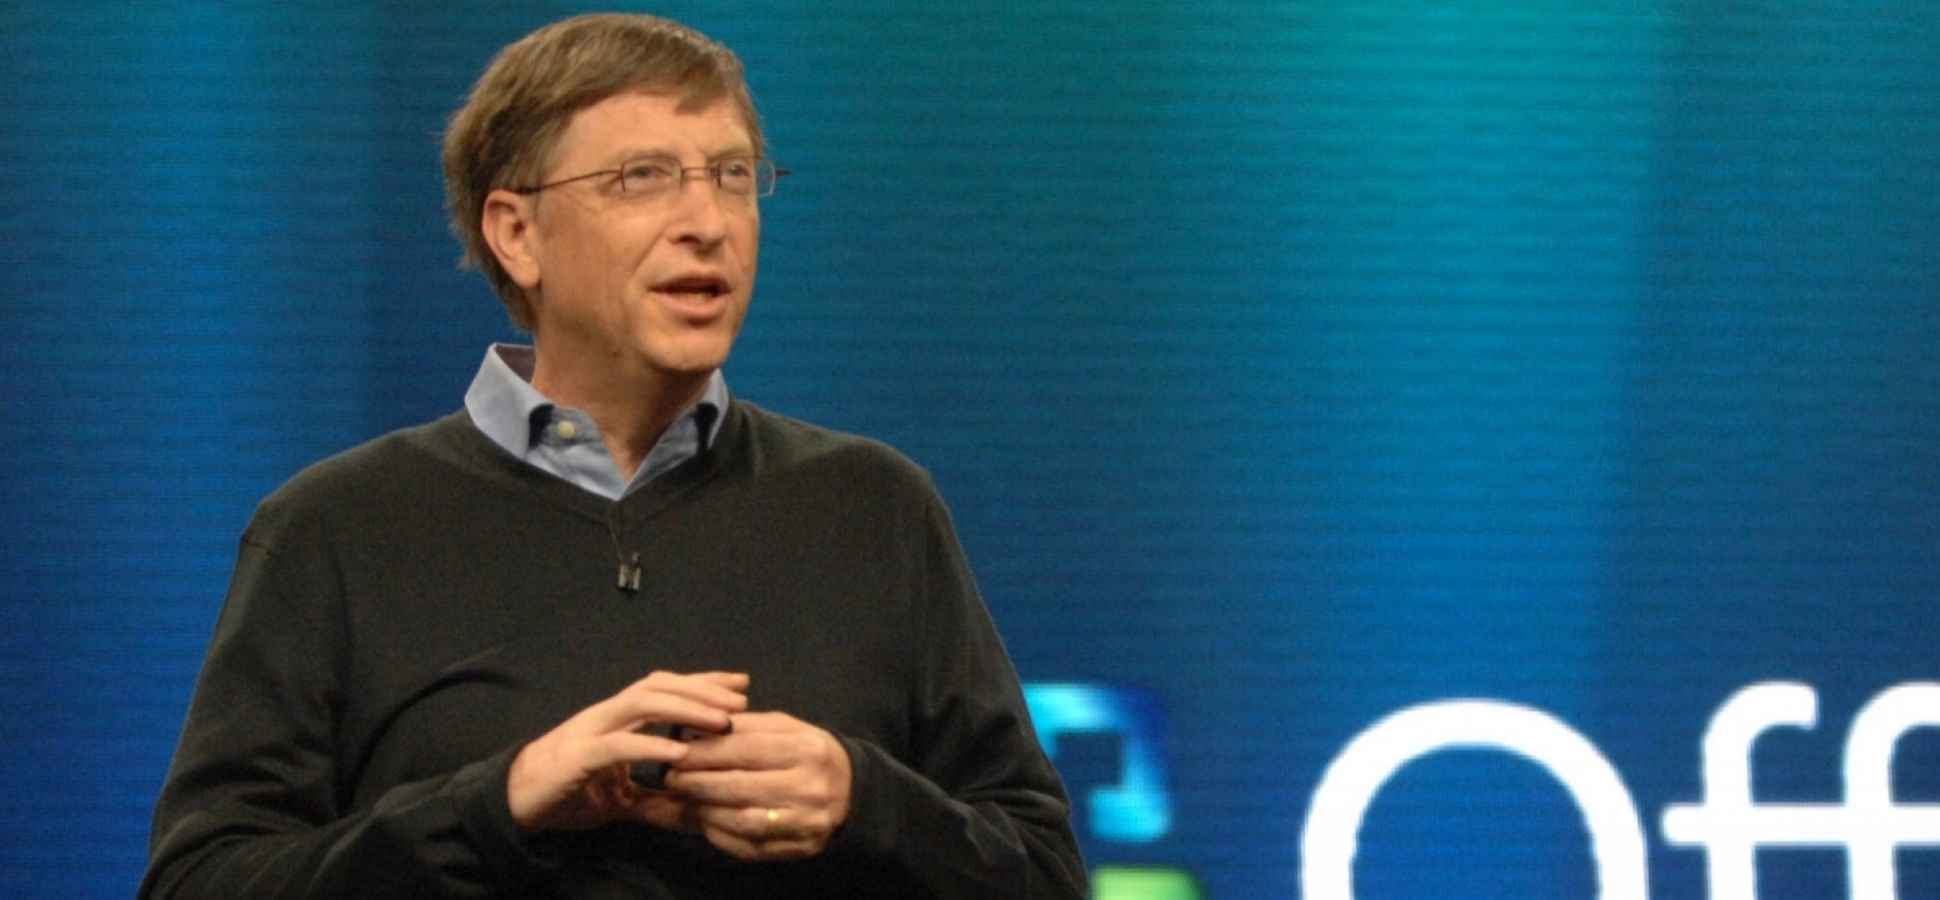 8 Highly Effective Habits That Helped Make Bill Gates the Richest Man on Earth